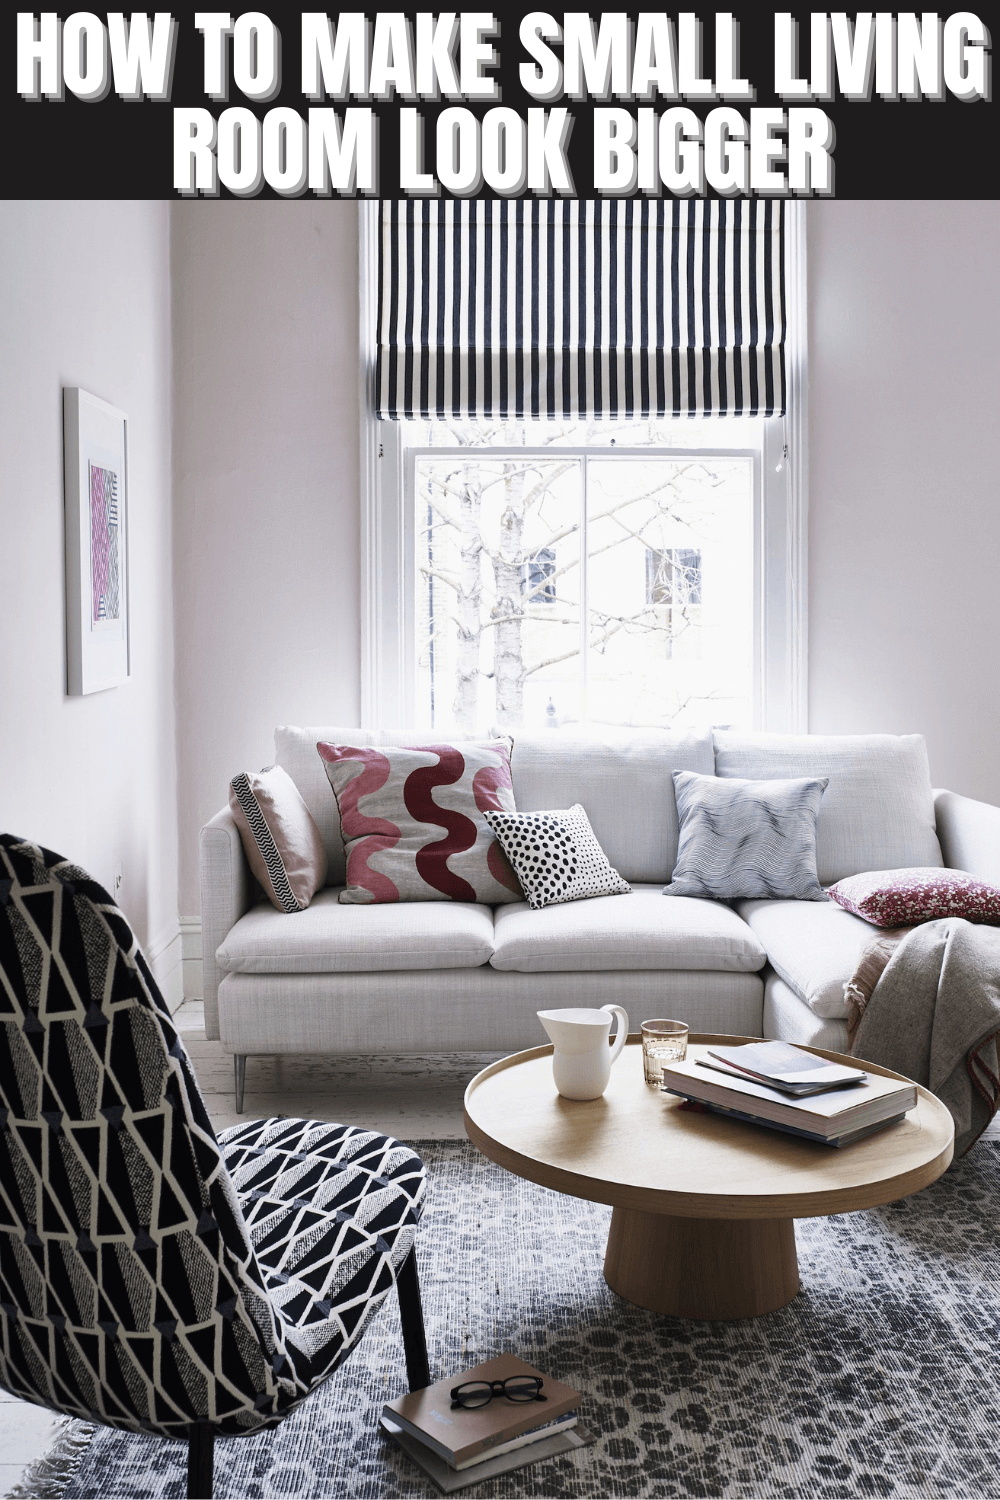 HOW TO MAKE SMALL LIVING ROOM LOOK BIGGER